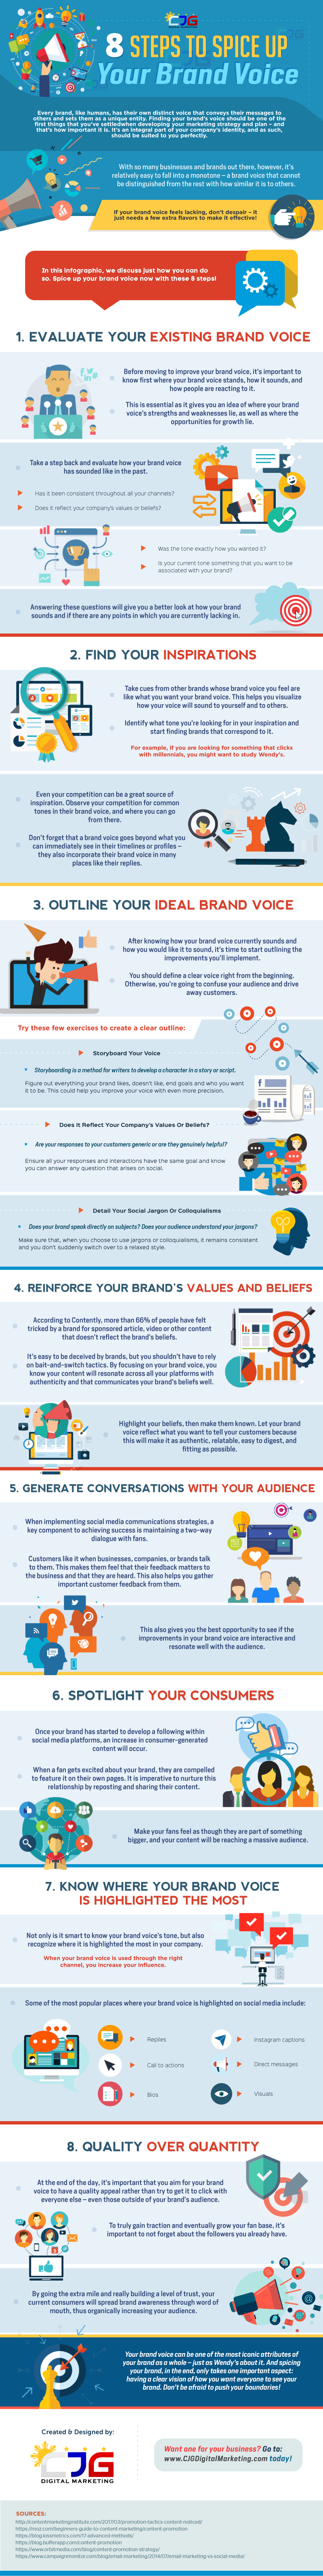 8_Steps_to_Spice_Up_Your_Brand_Voice